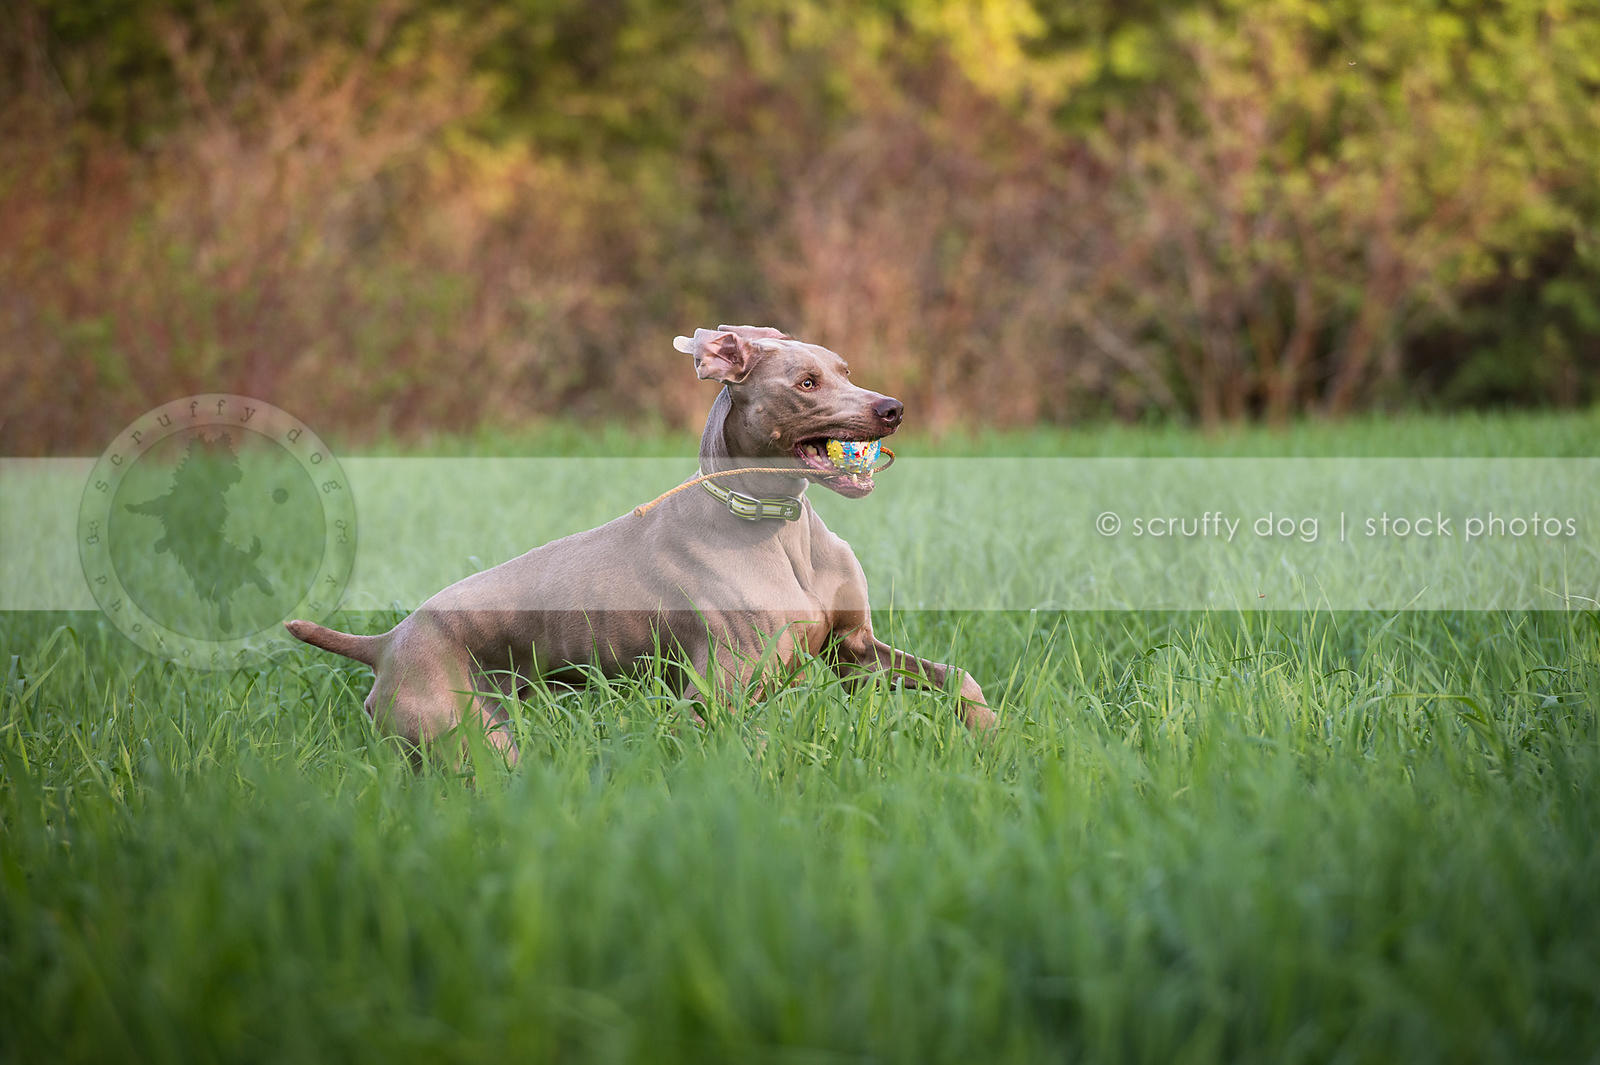 grey weimaraner dog carrying fetching toy in meadow grasses